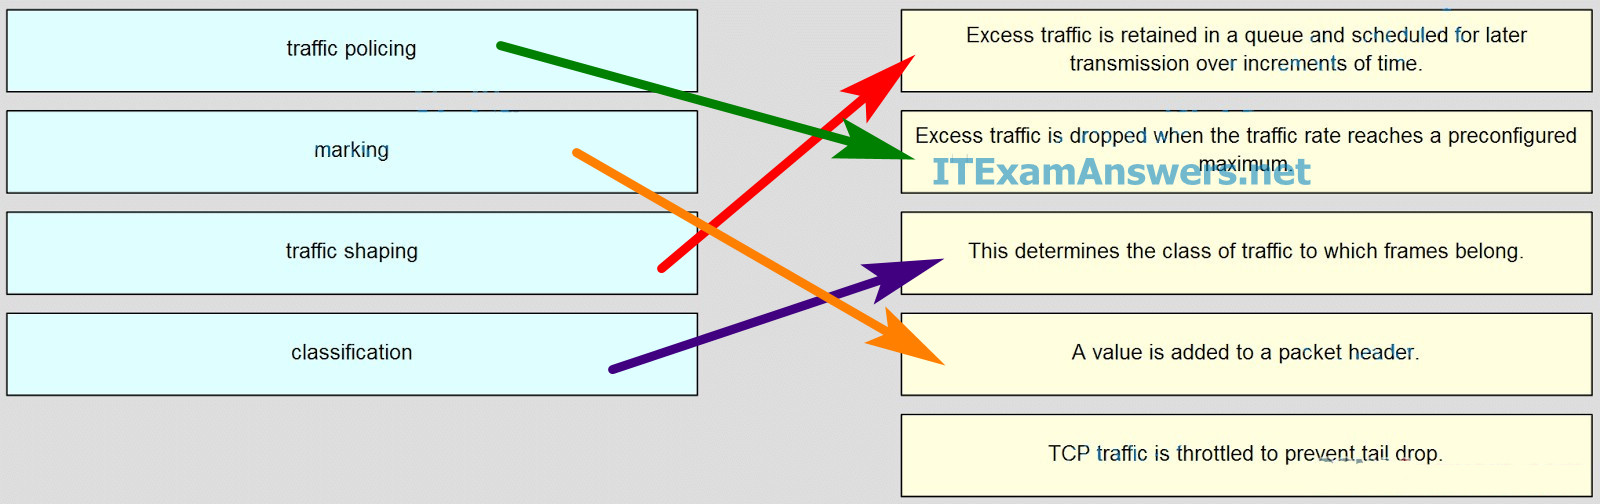 CCNA 4 Final Exam Answers 2020 (v5.0.3+v6.0) - Connecting Networks 57